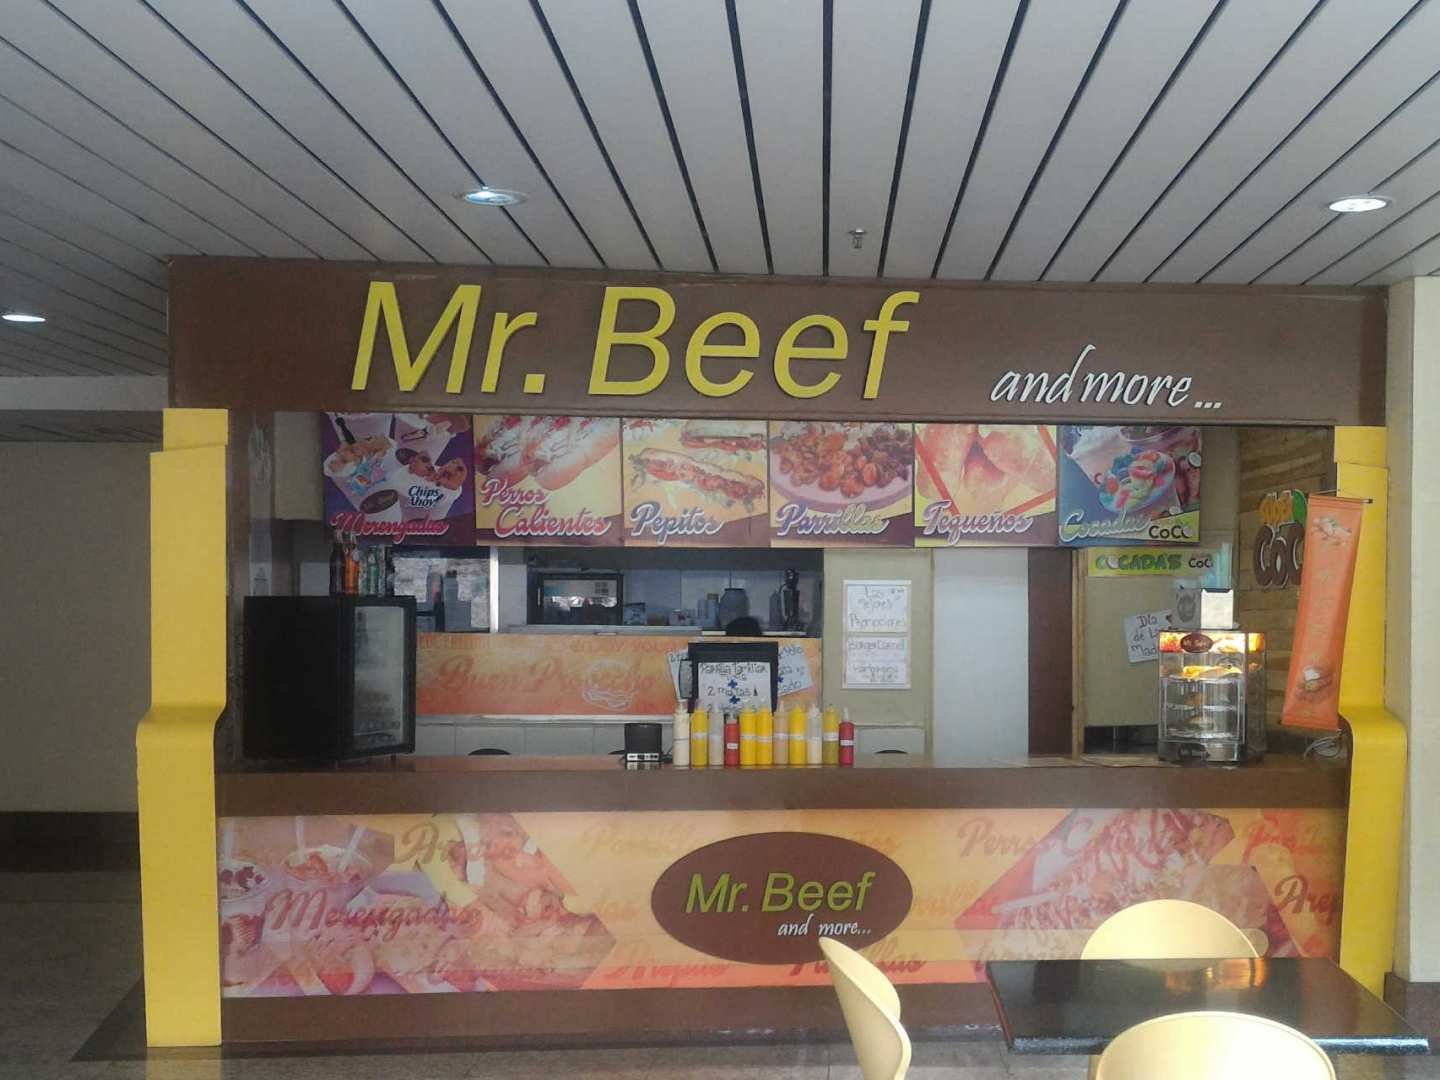 Mr. Beef